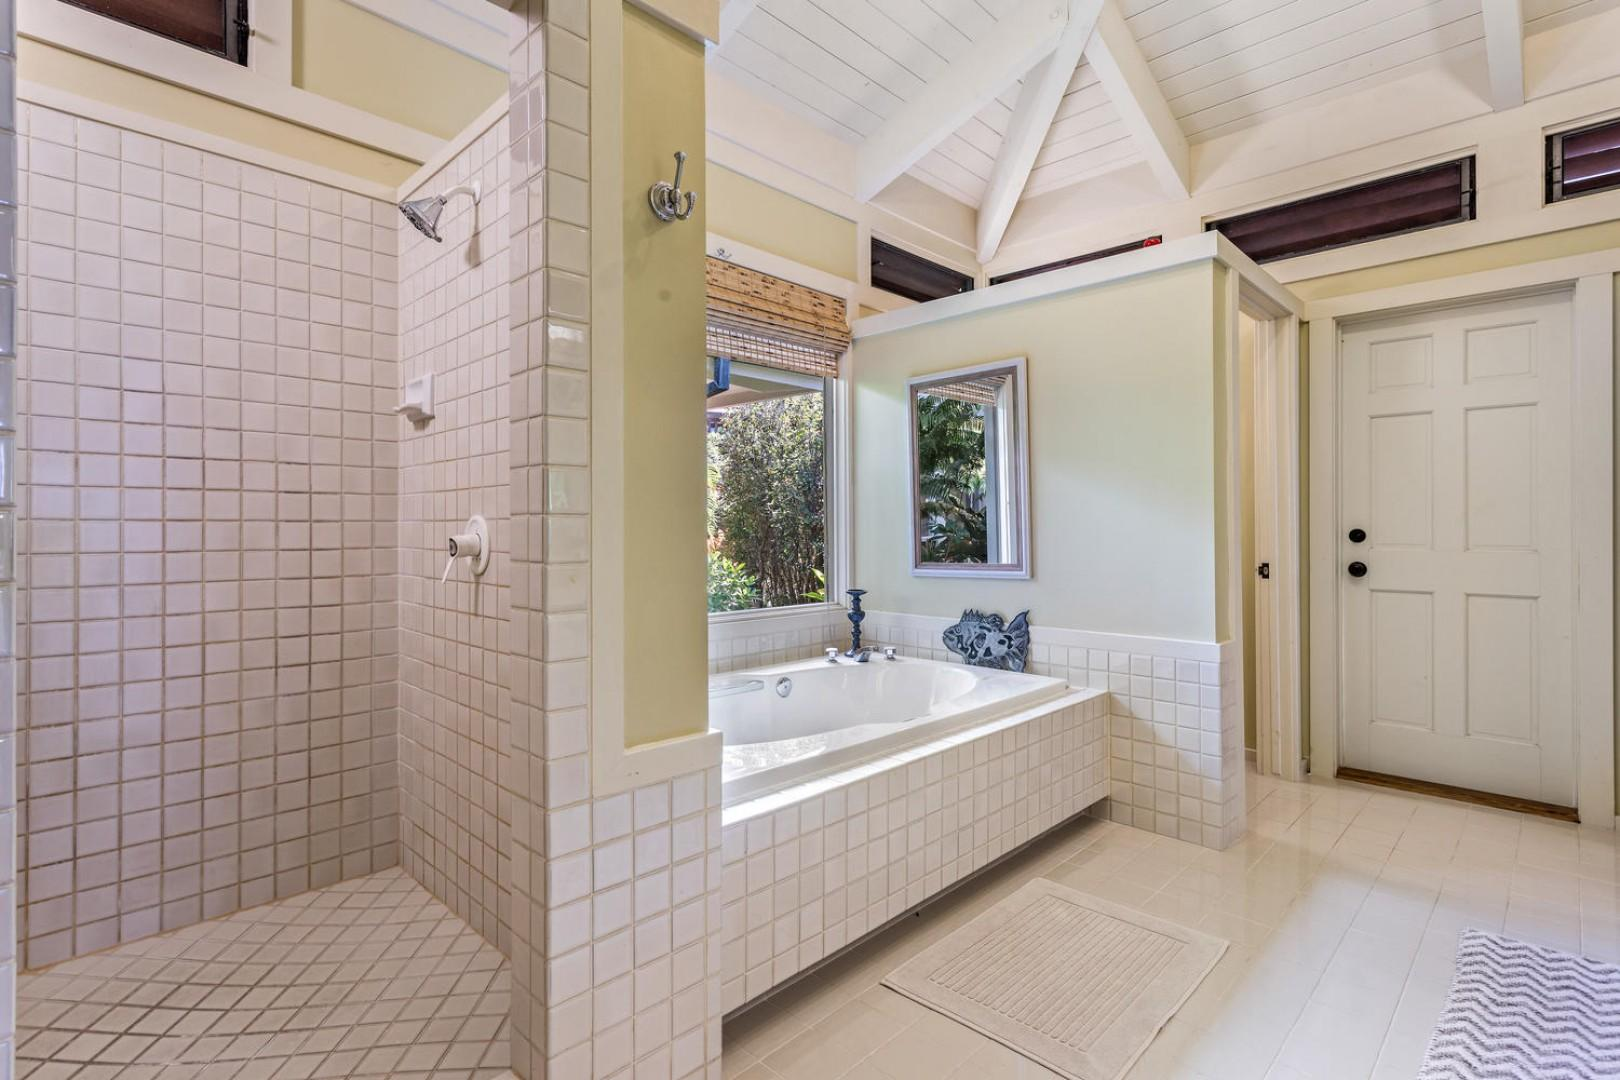 The master bath has a deep tub and a separate shower.